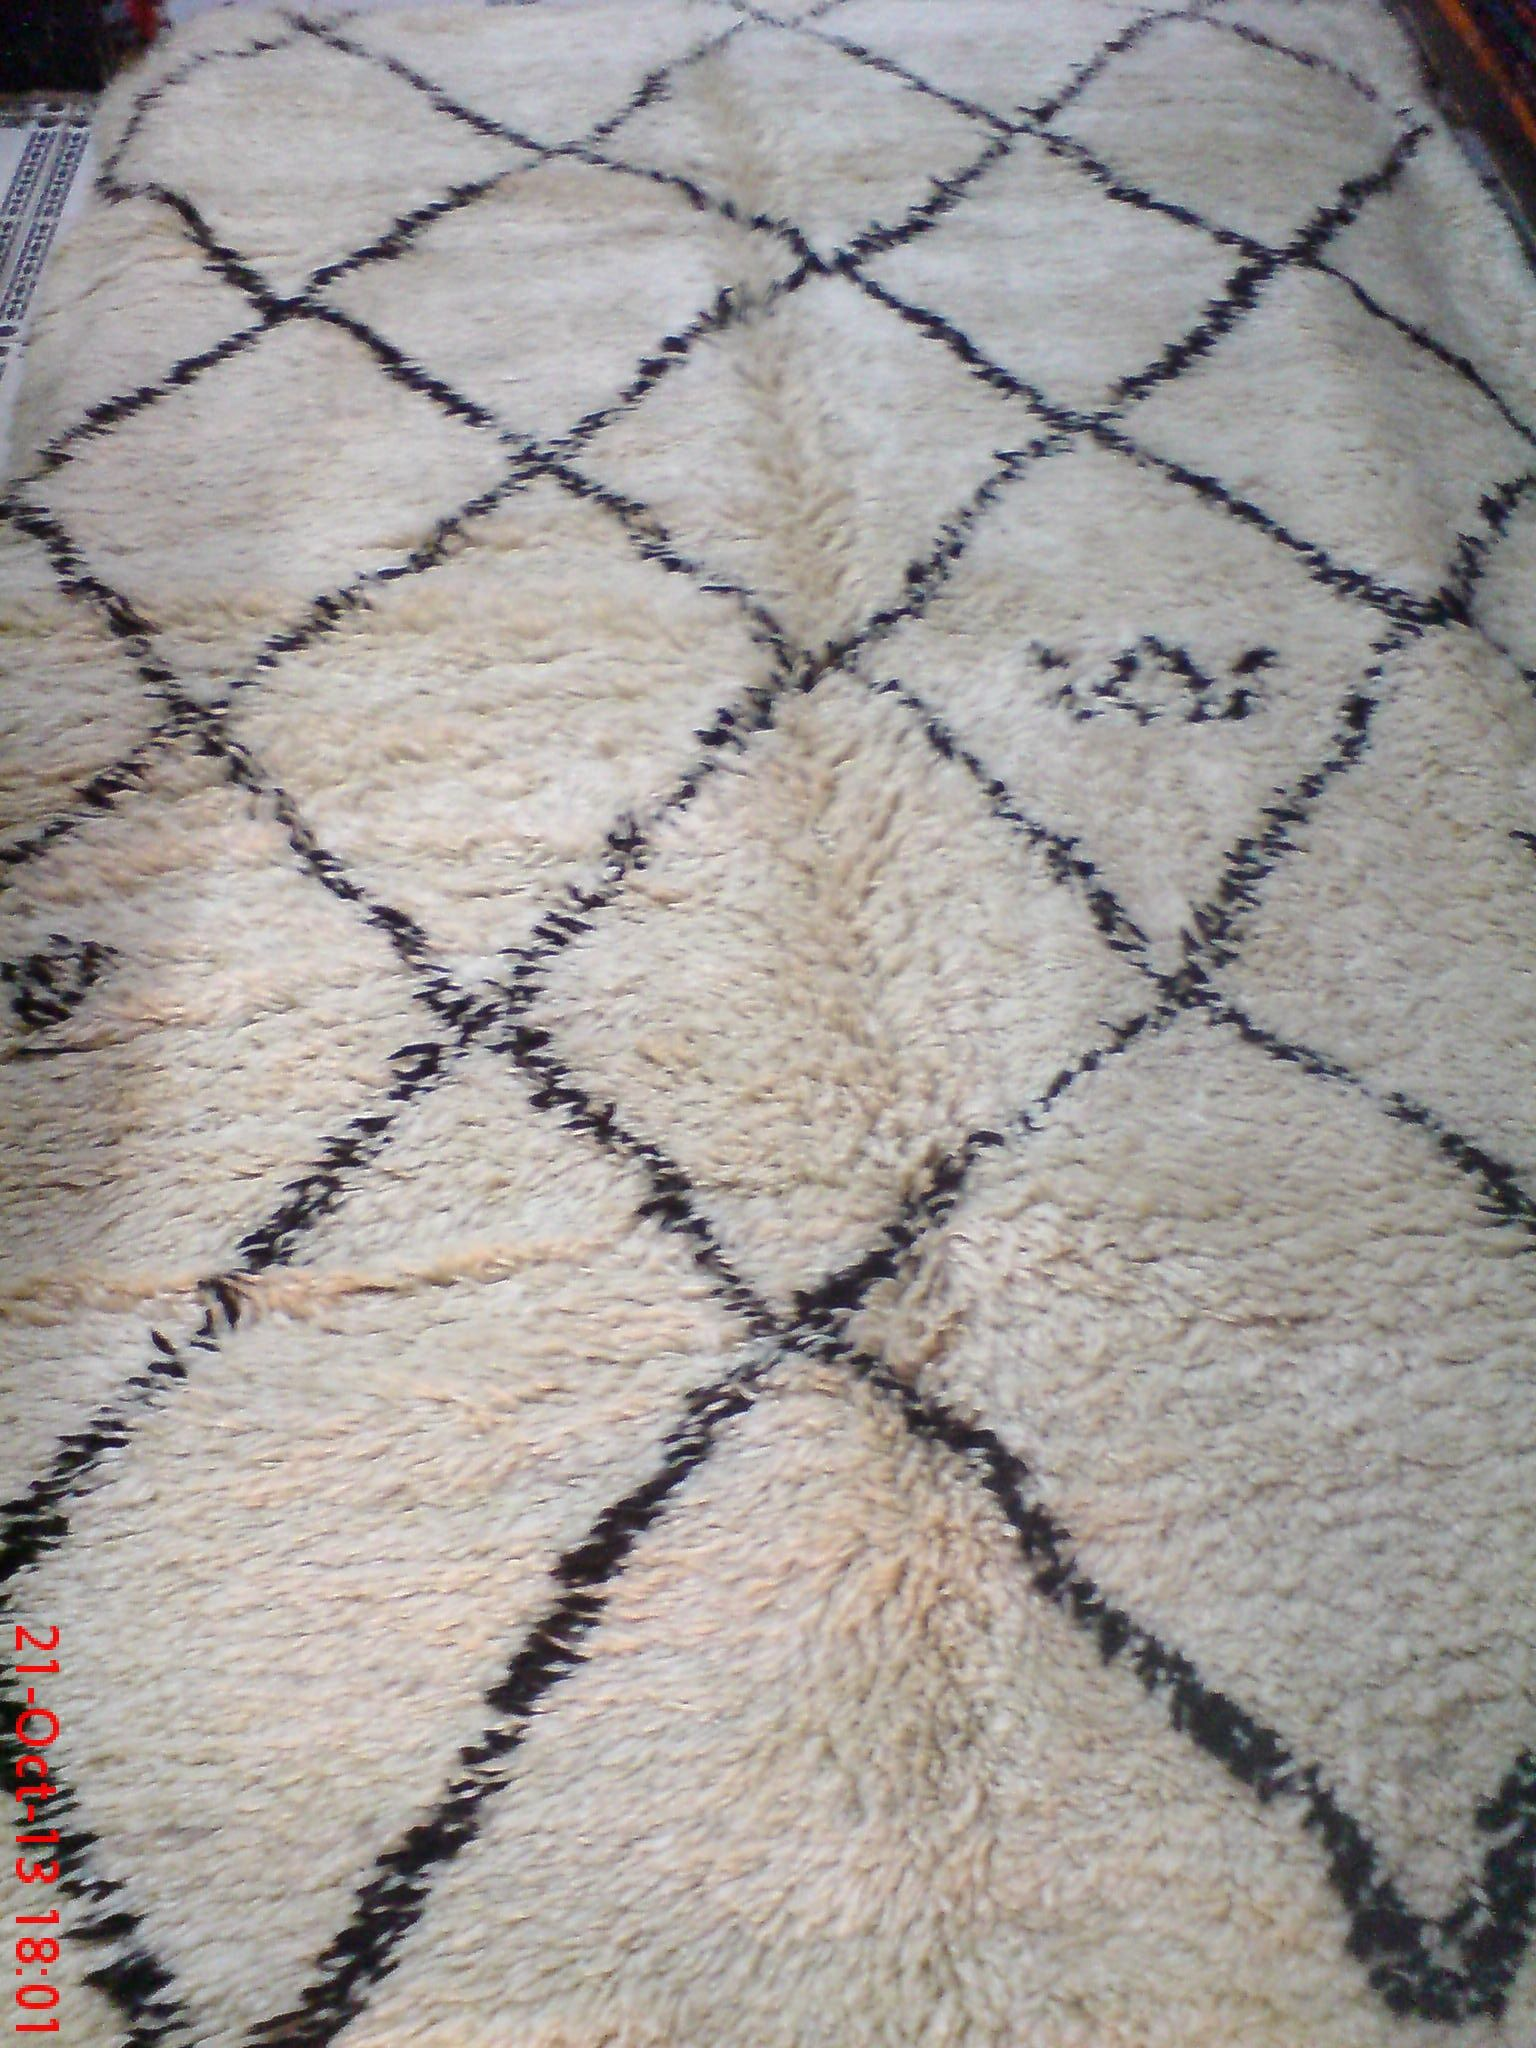 Beni Ourain rug with tribal markings. 2M x 3M Beni